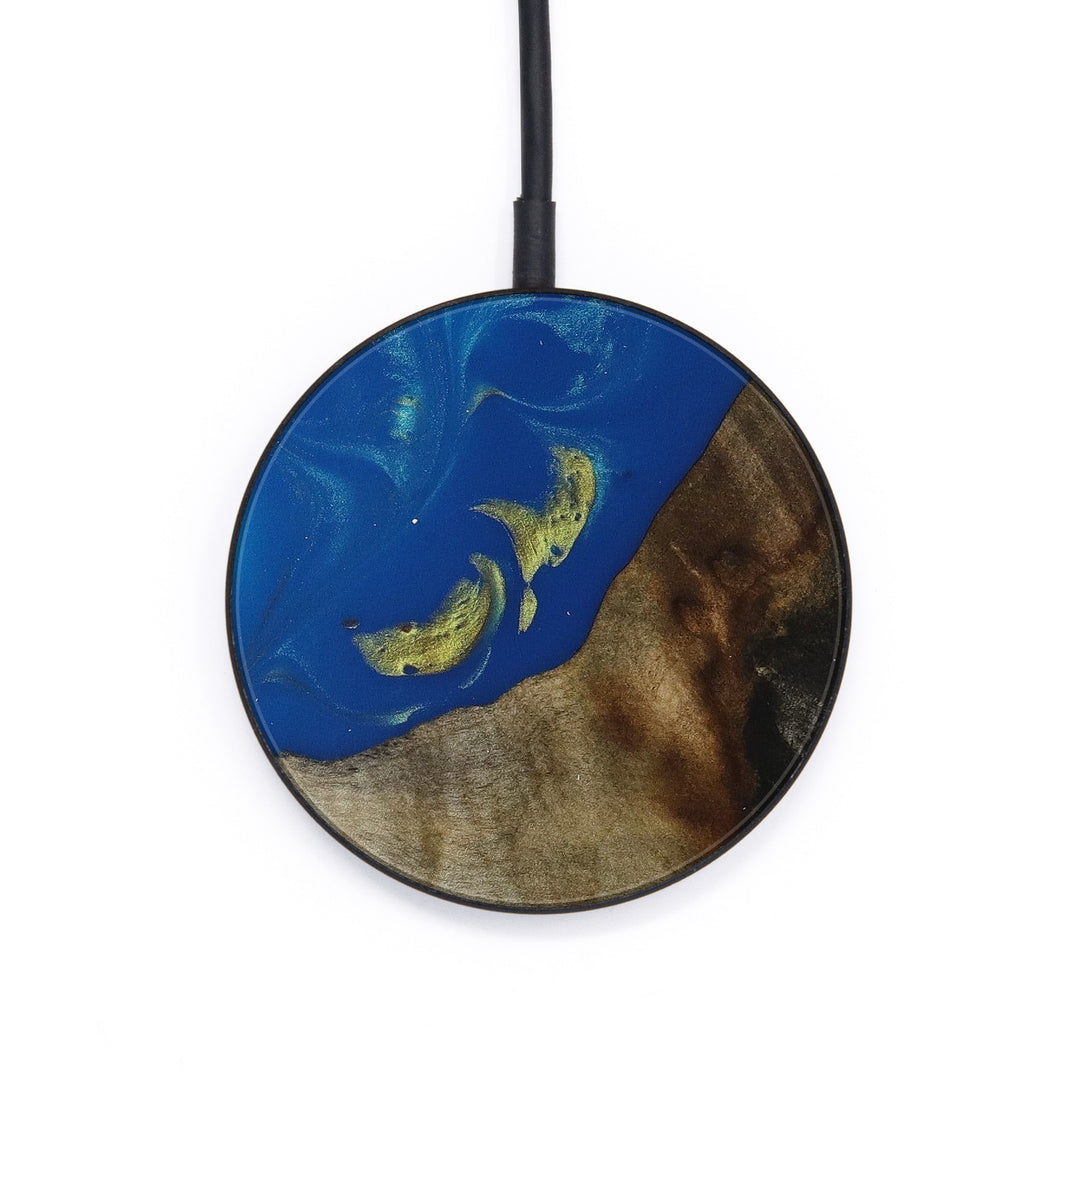 Circle Wood+Resin Wireless Charger - Mirna (Teal & Gold, 403085)